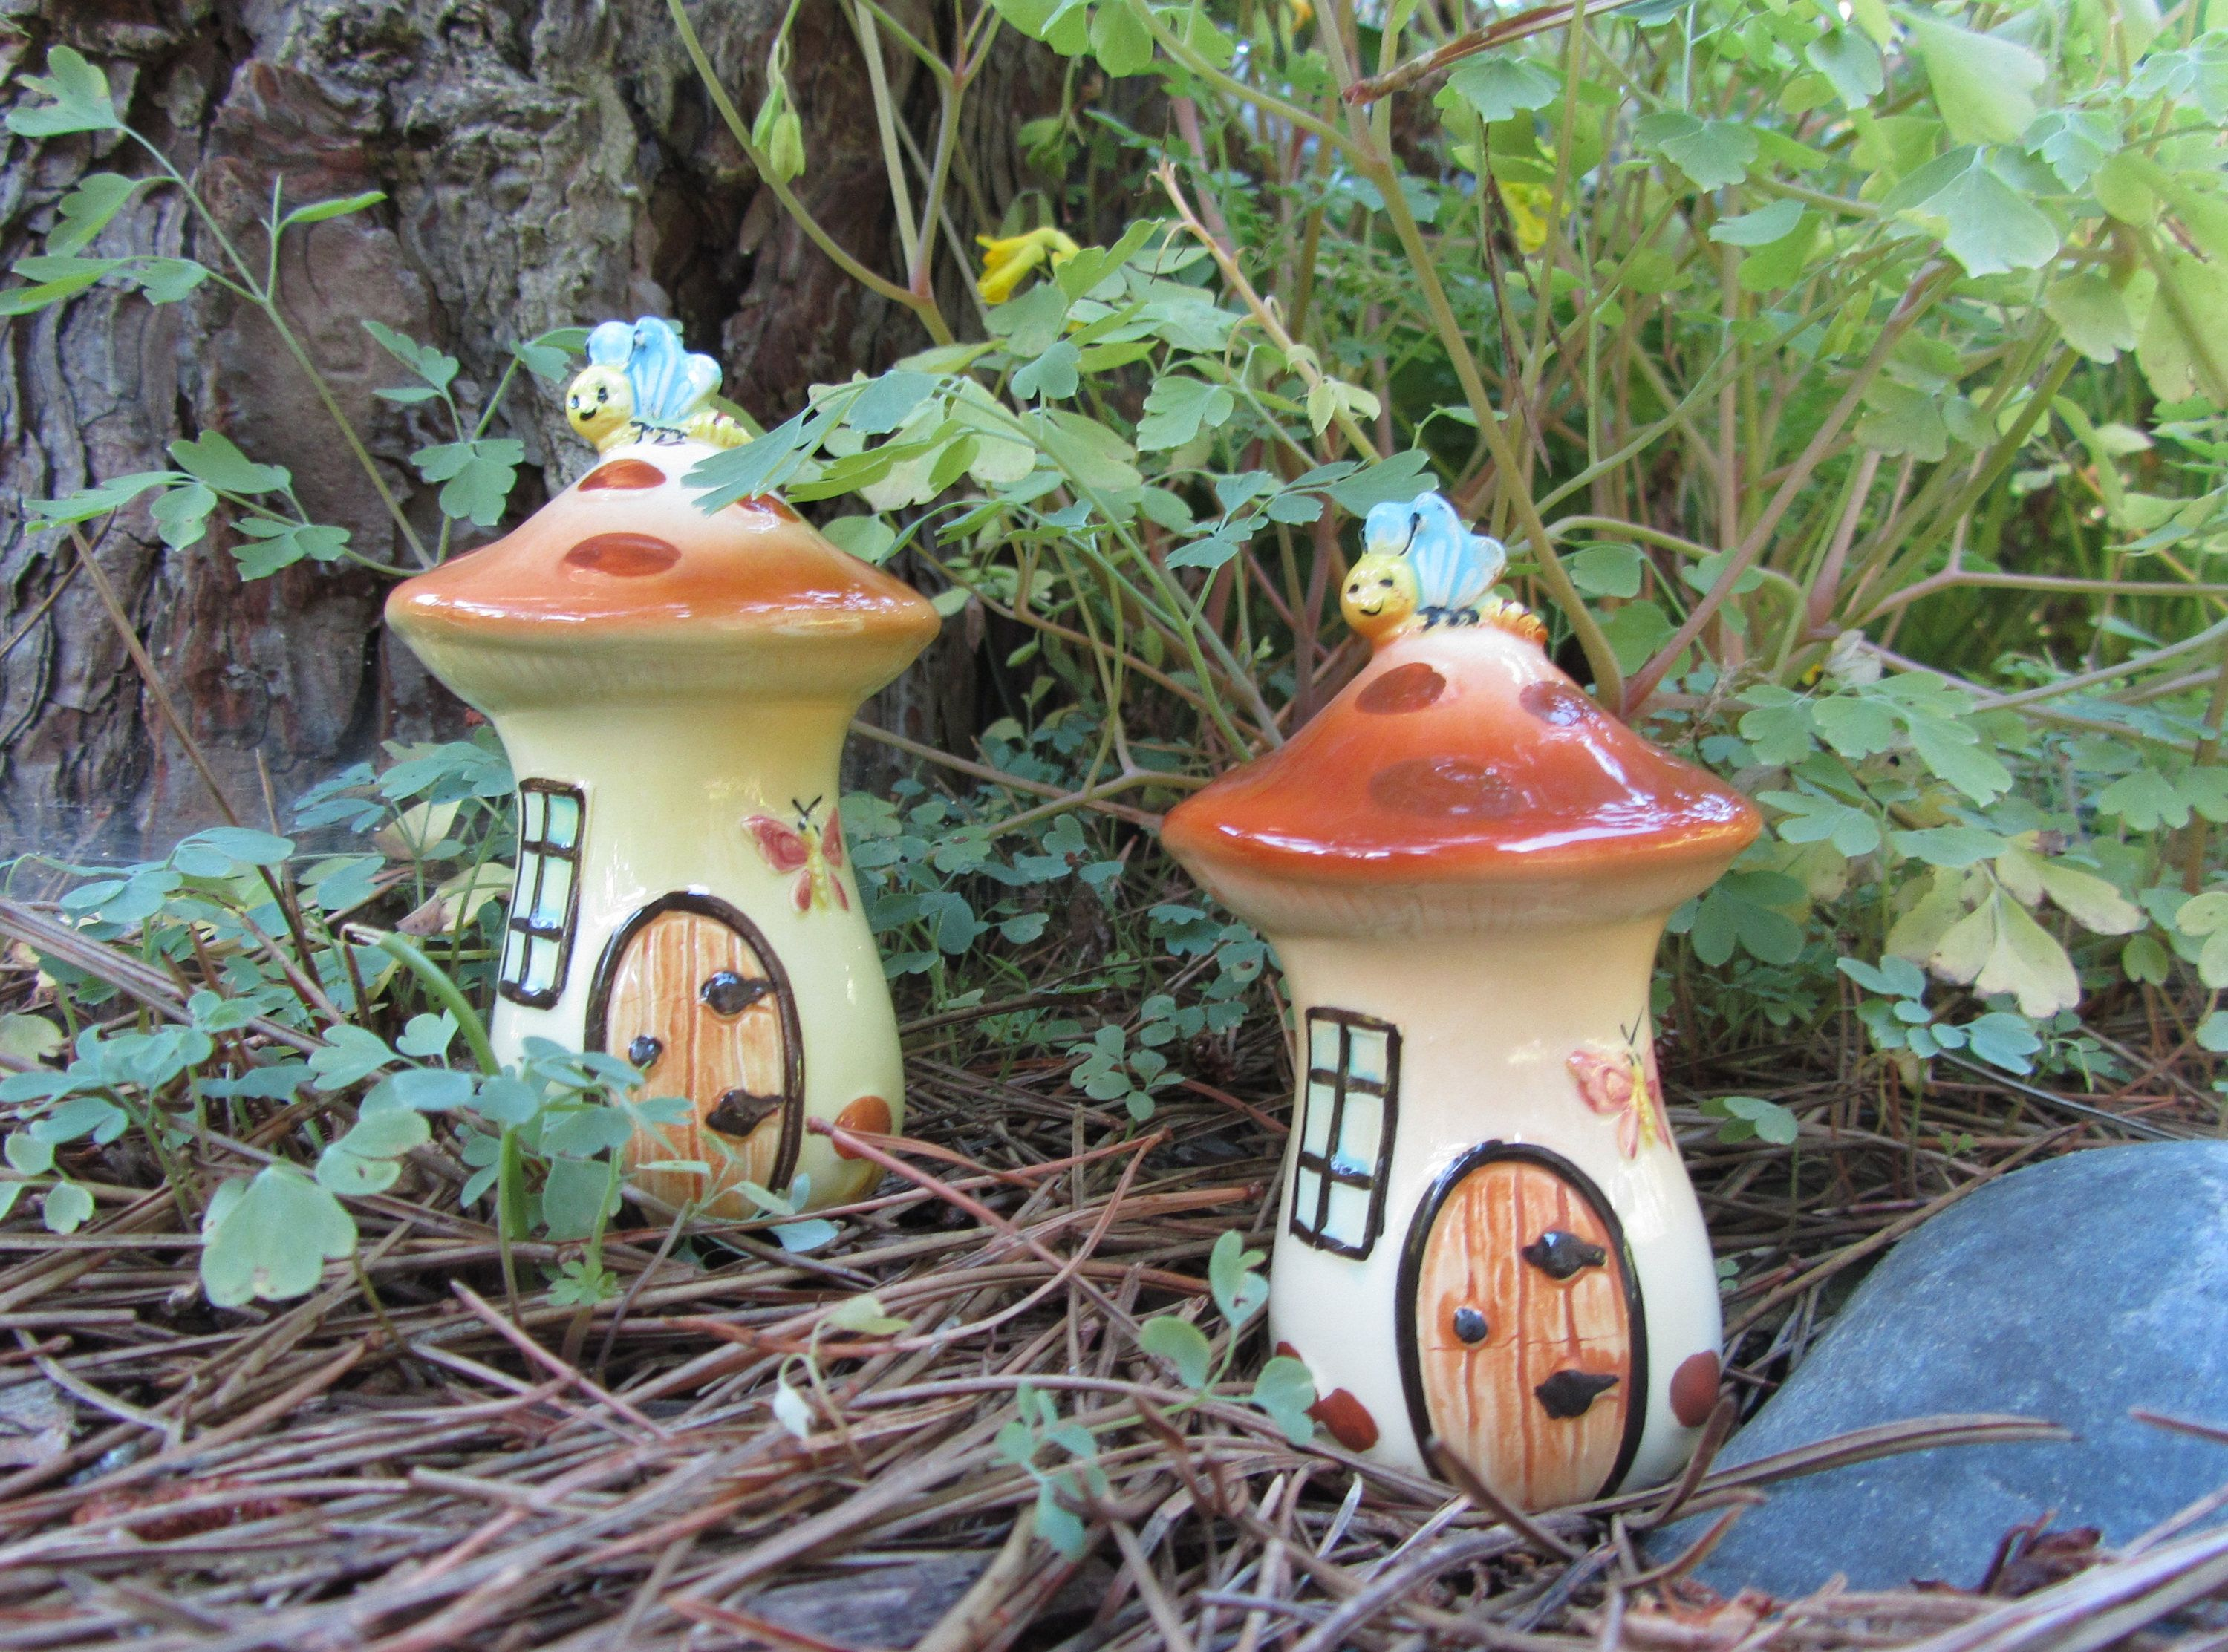 Artistic Vintage House Salt Pepper Home Mushroom Fairy Garden House Mushroom Fairy Garden Pepper Home Figurineshakers Whimsical Decor Art Gift Vintage House Salt garden Mushroom Fairy Garden